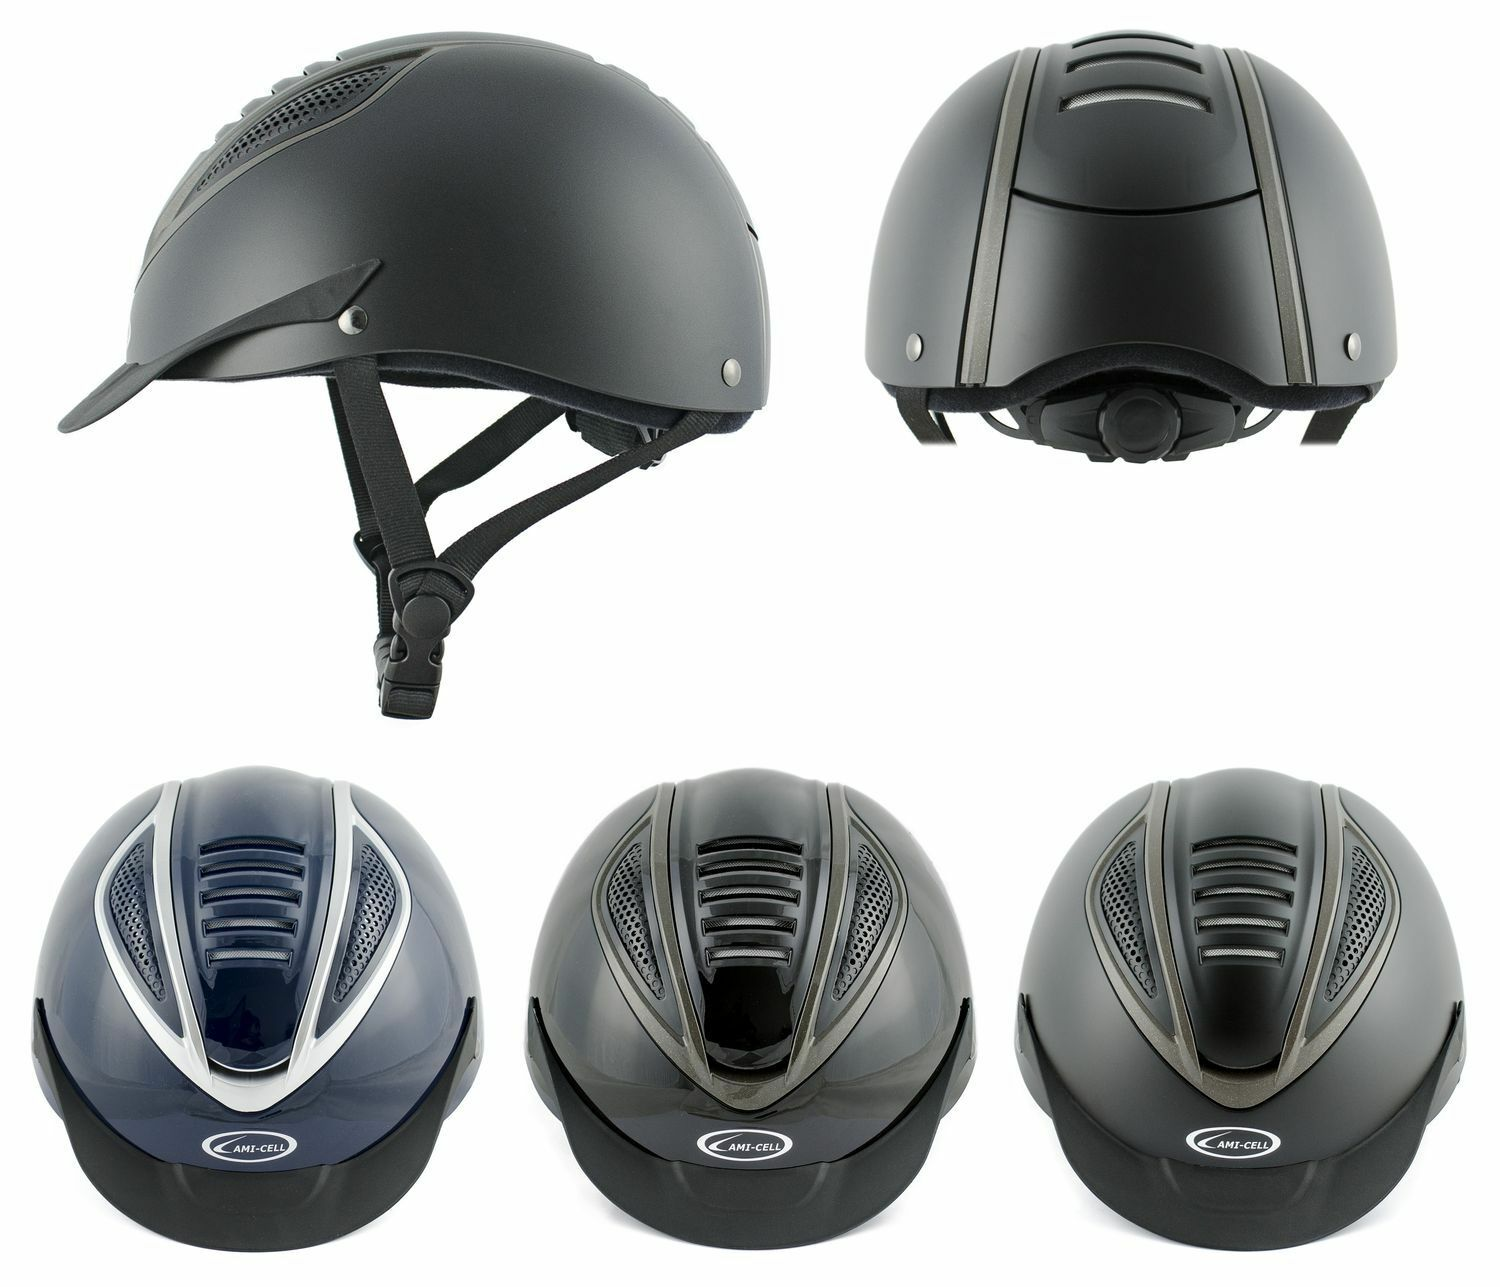 UMBRIA EQUITAZIONE Helm luftig lamicell  Modell  Cobra . AB01200  online sale